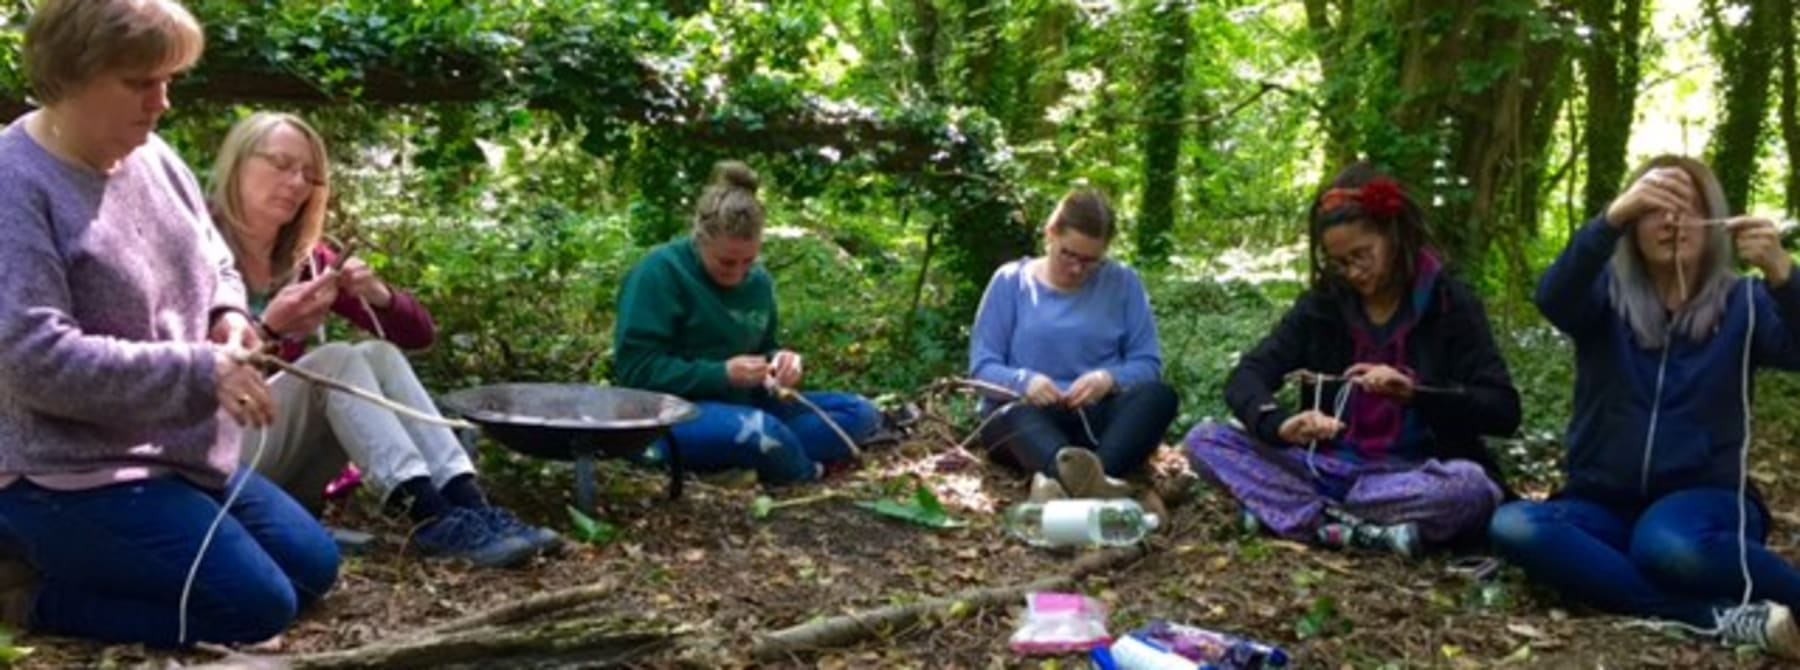 Level 2 Award in Forest School Programme Support